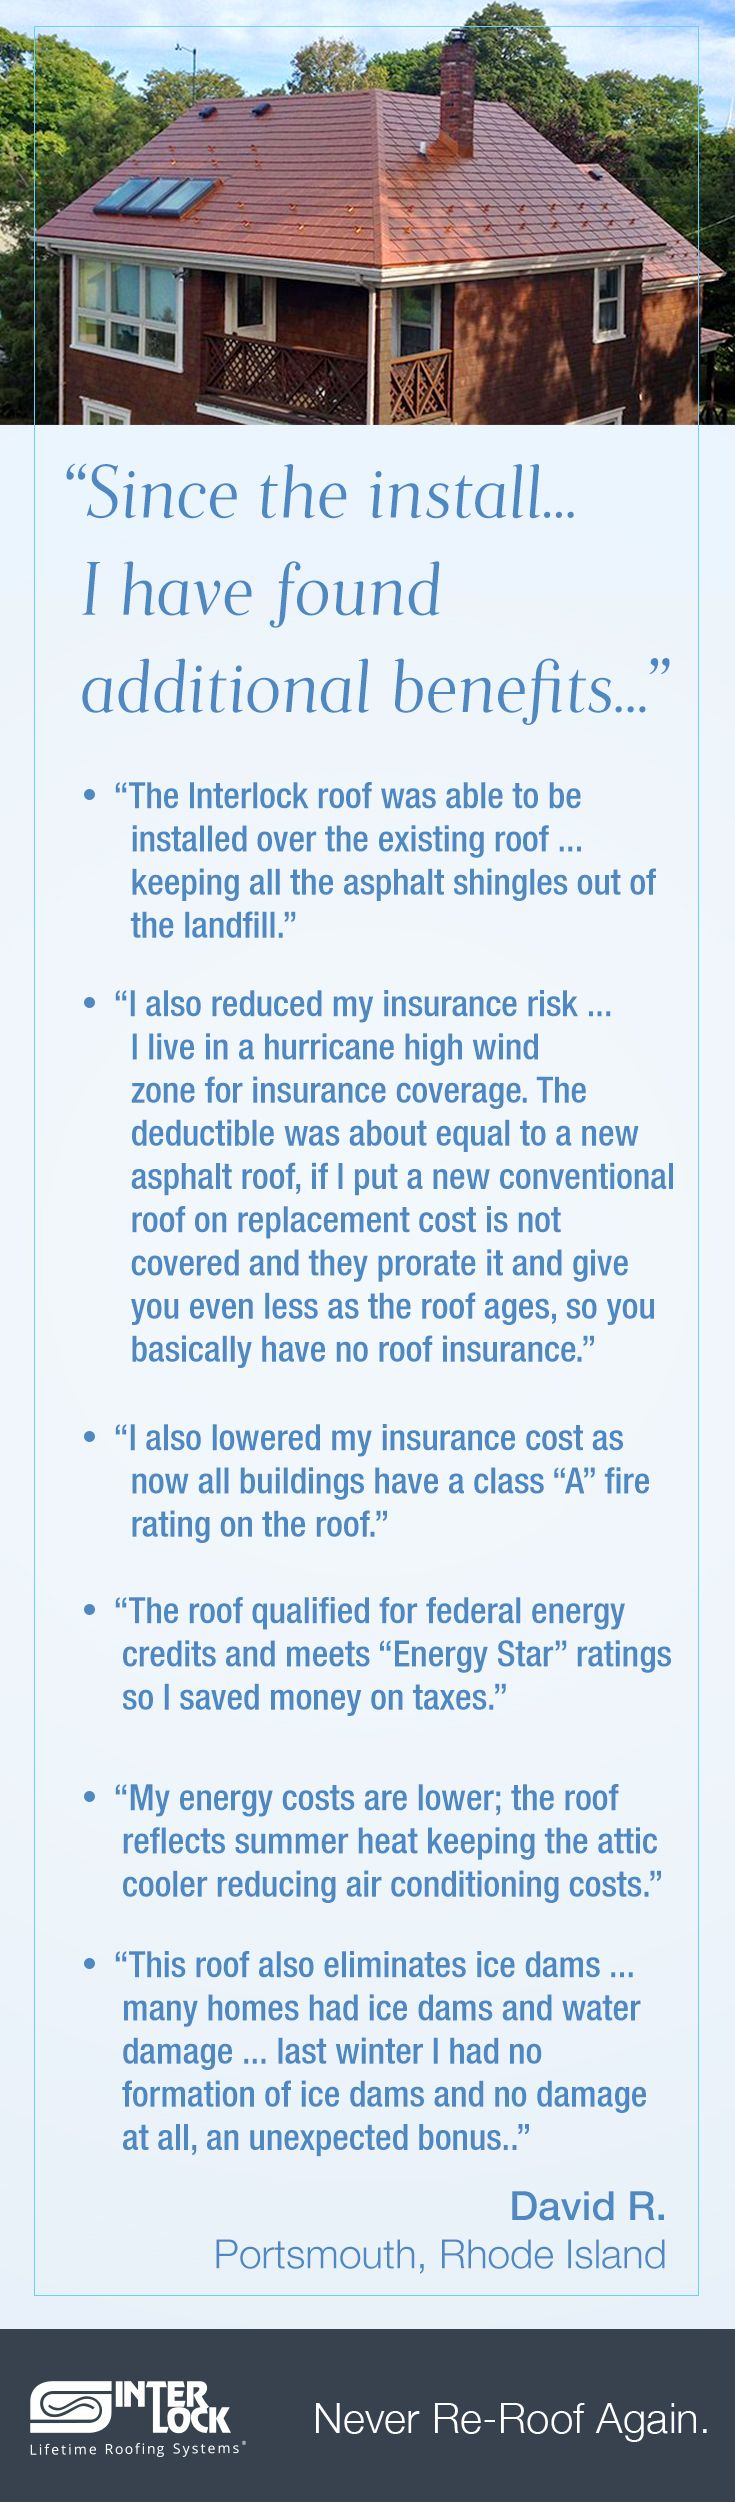 There are many tangible benefits to a new metal roof. This customer initially bought for the resistance to extreme winds (hurricane rated) but also listed so many things he found over his first winter with his new roof. Thank you David!